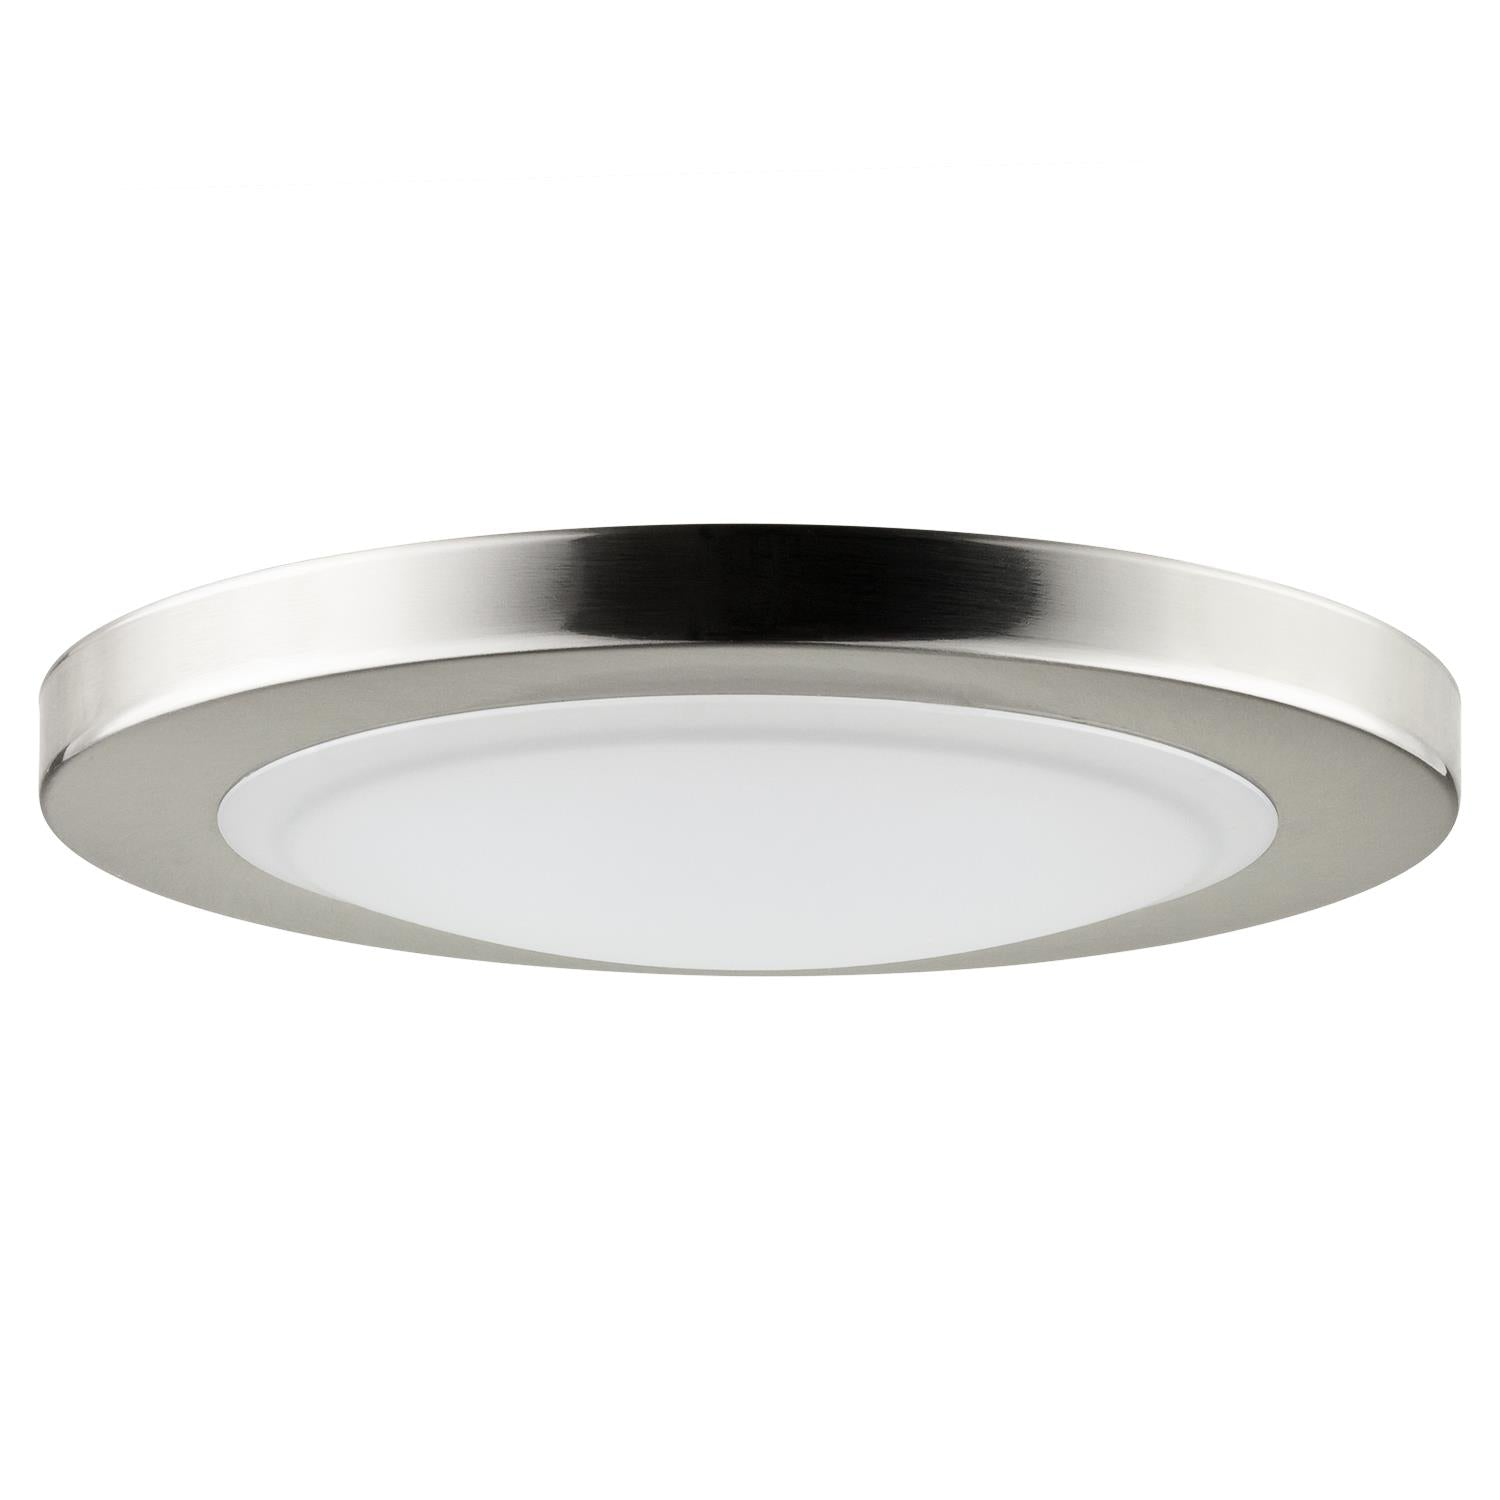 SUNLITE 15w Mini Dome Ceiling Light Fixture in Brushed Nickel - 4000K